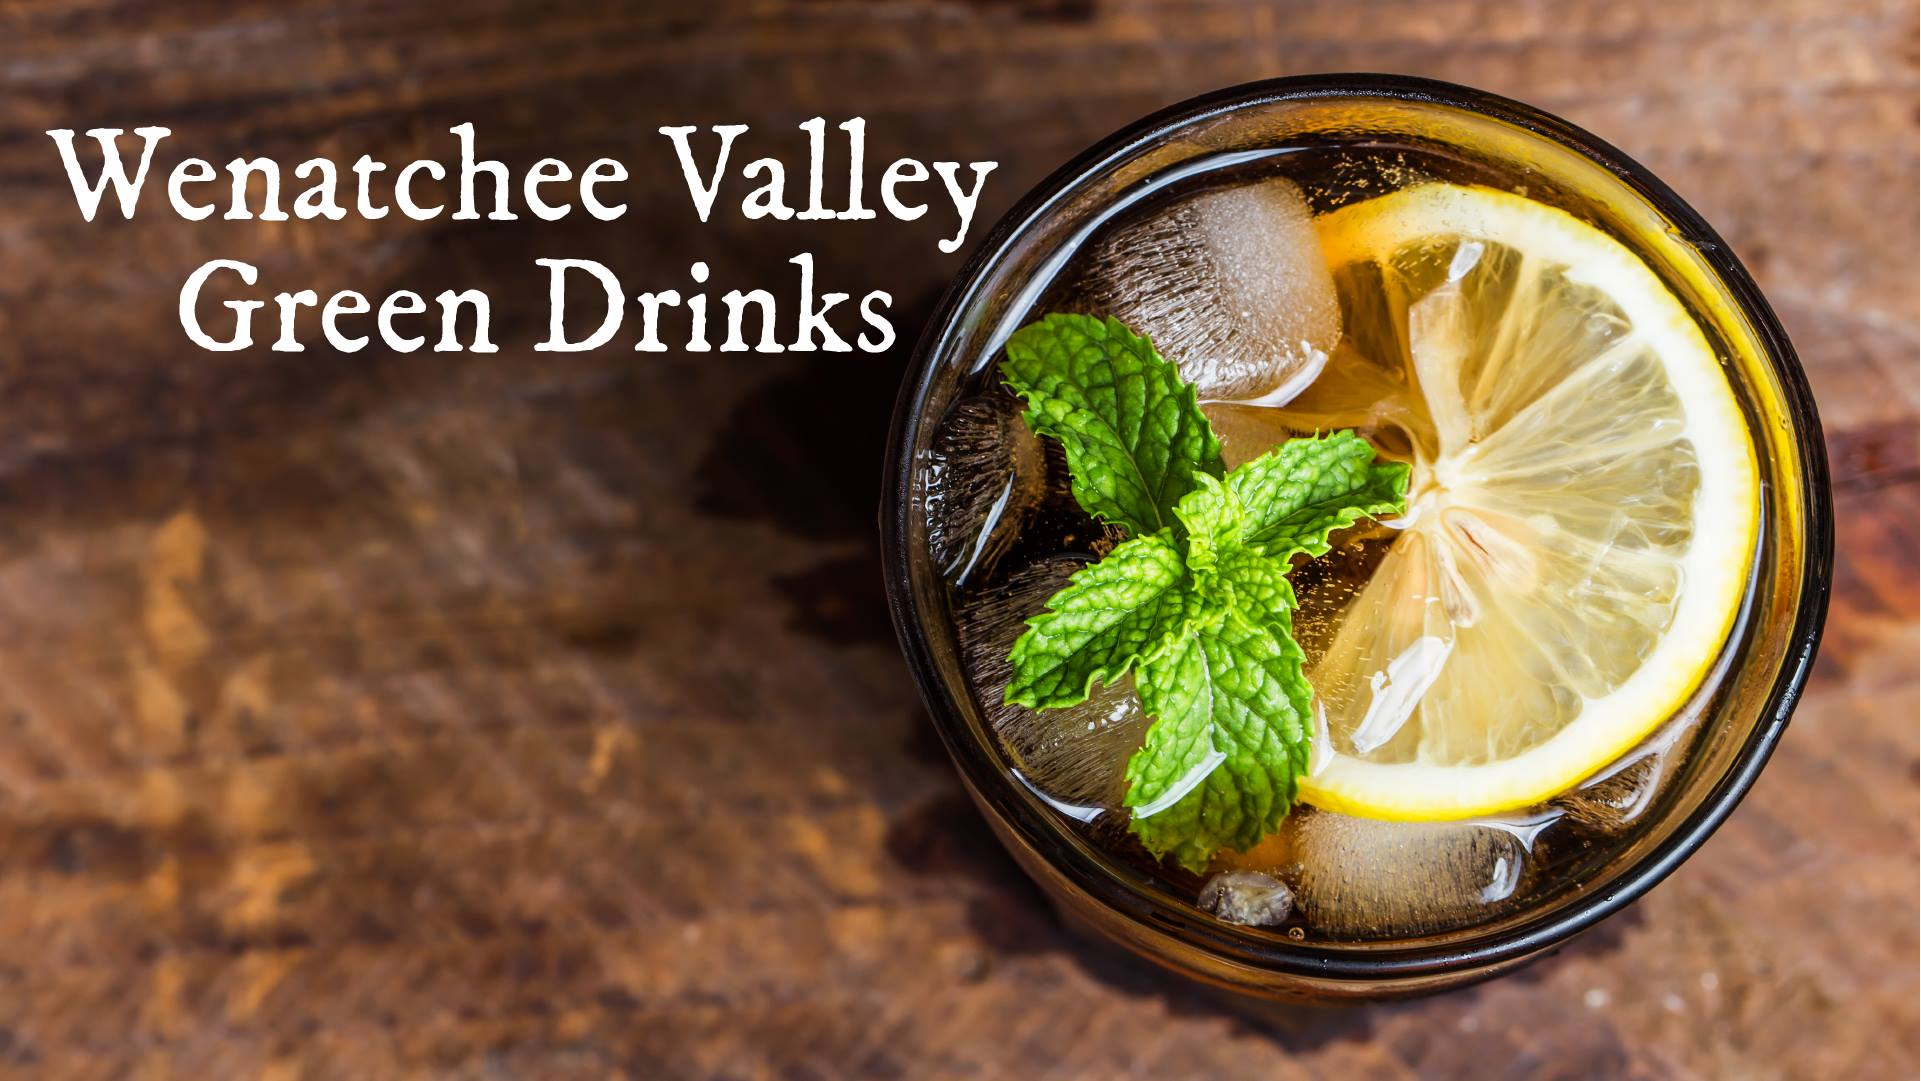 Wenatchee Valley Green Drinks